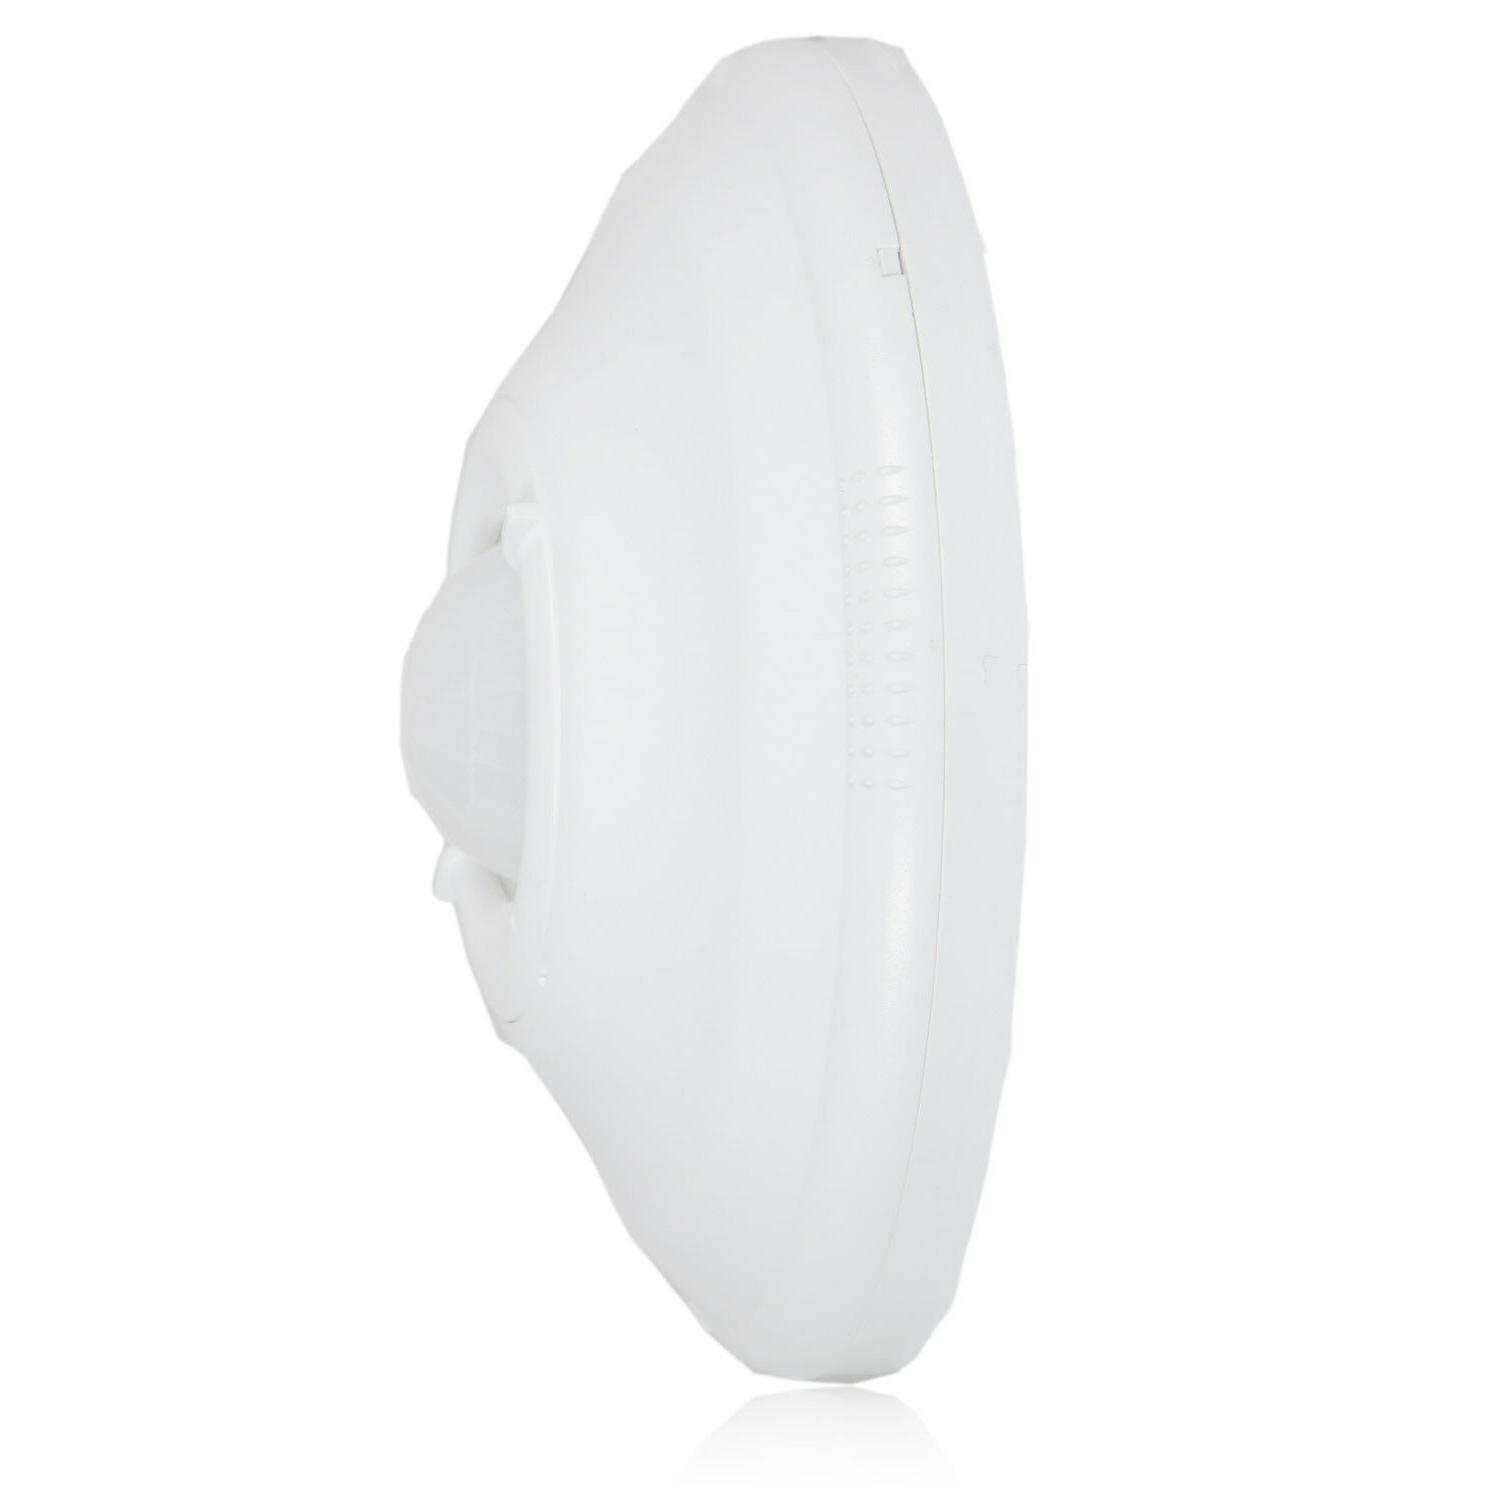 Maxxima Ceiling Mount Degree Hard-Wired